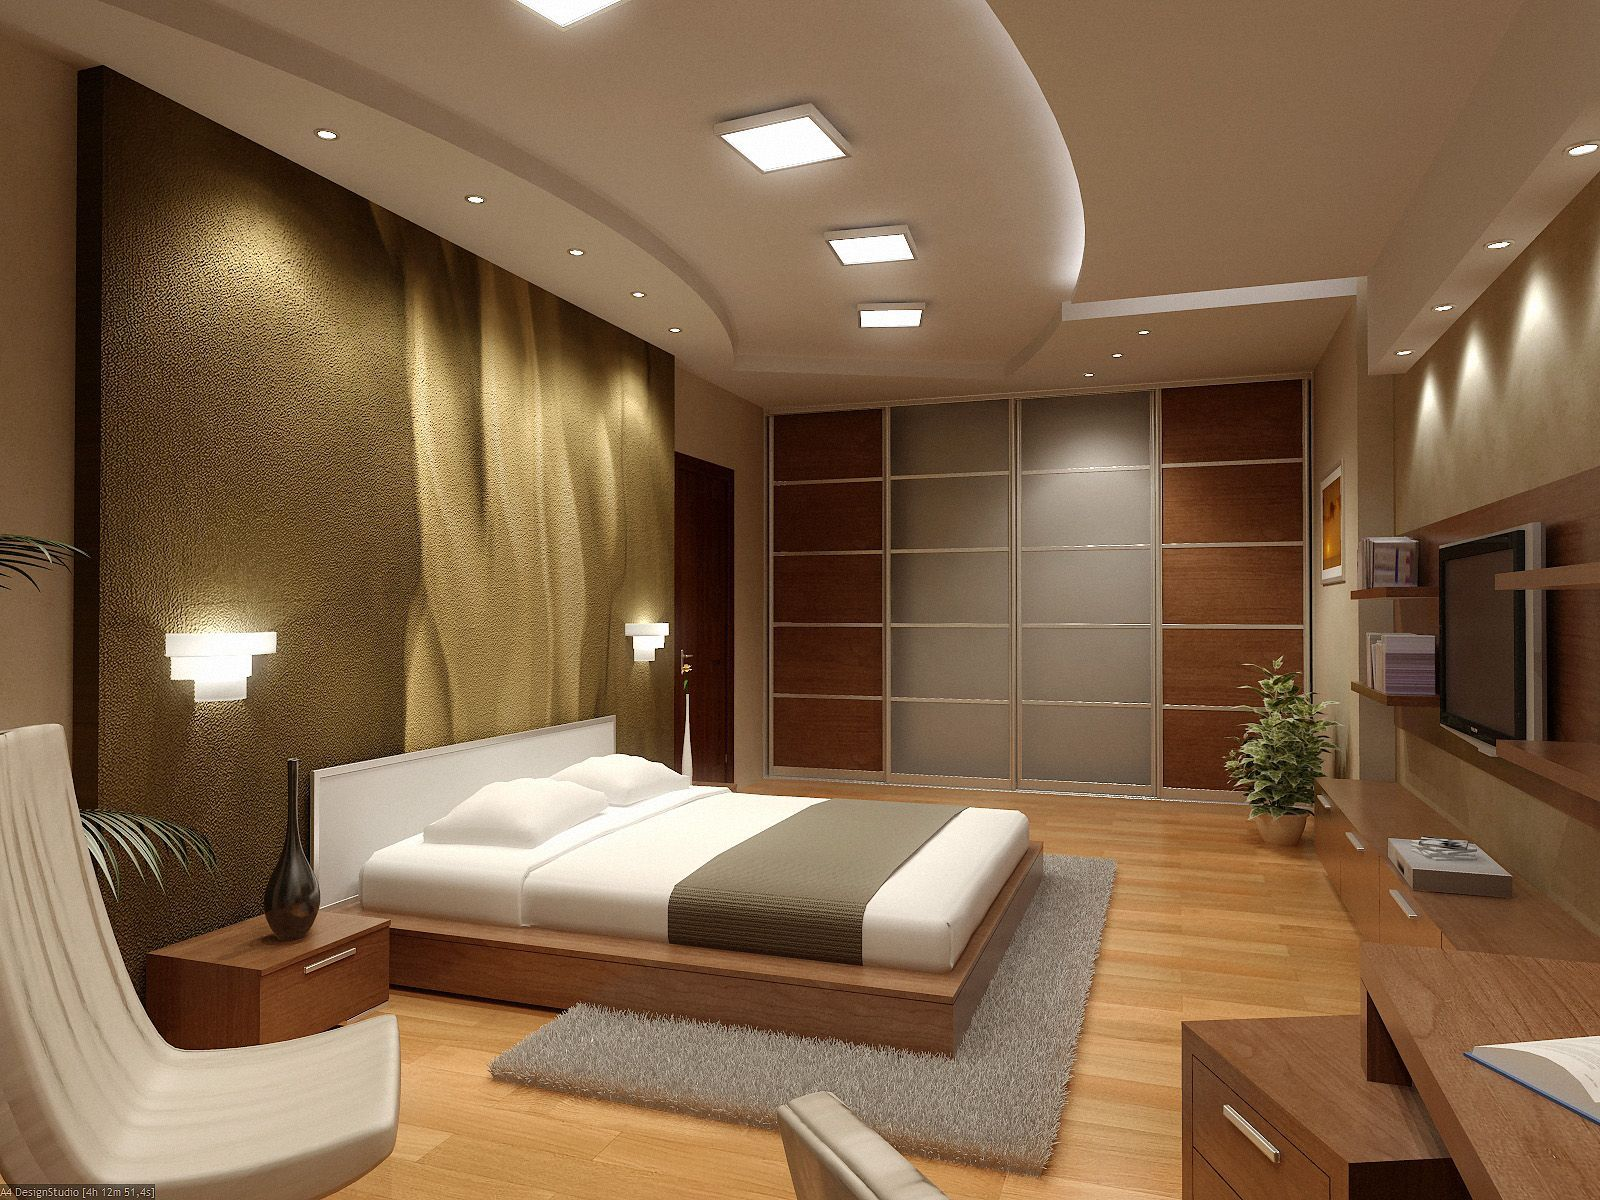 how much are interior designers - 1000+ images about contemporary condo ideas on Pinterest ...